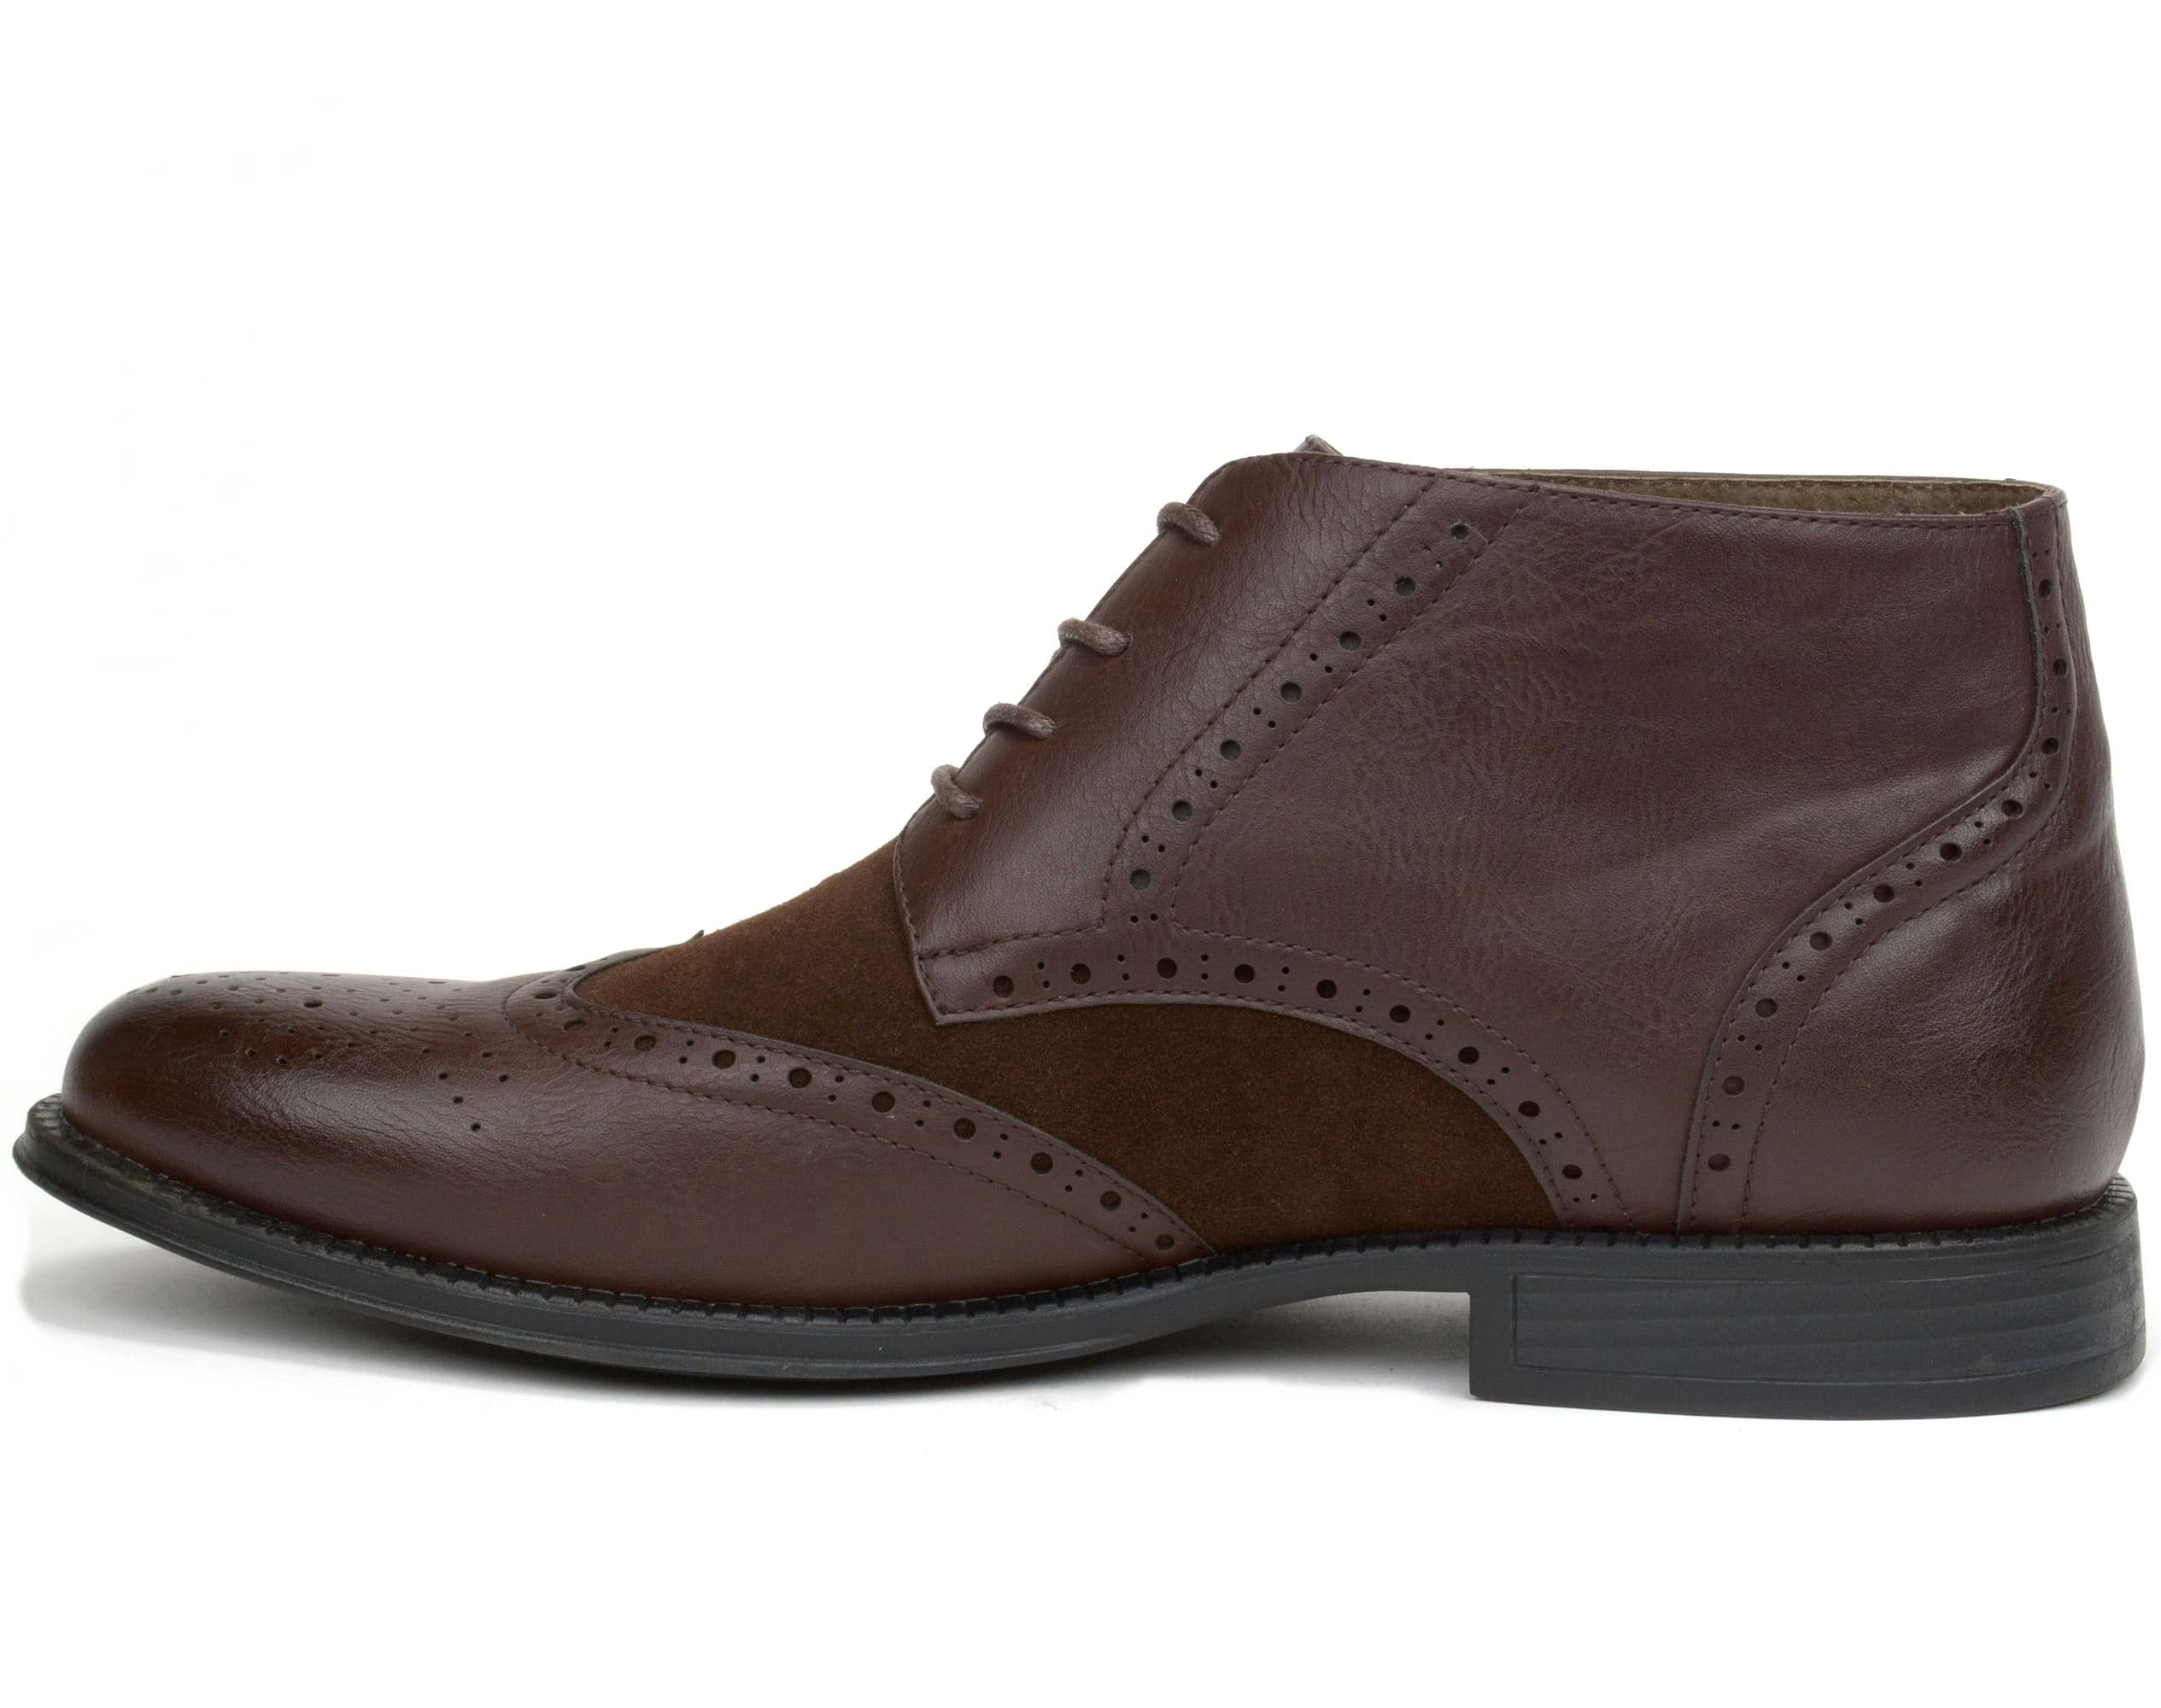 Alpine Swiss Mens Boots Wing Tip Lace Up Dress Shoes Two Tone Brogue Medallion - $29.99